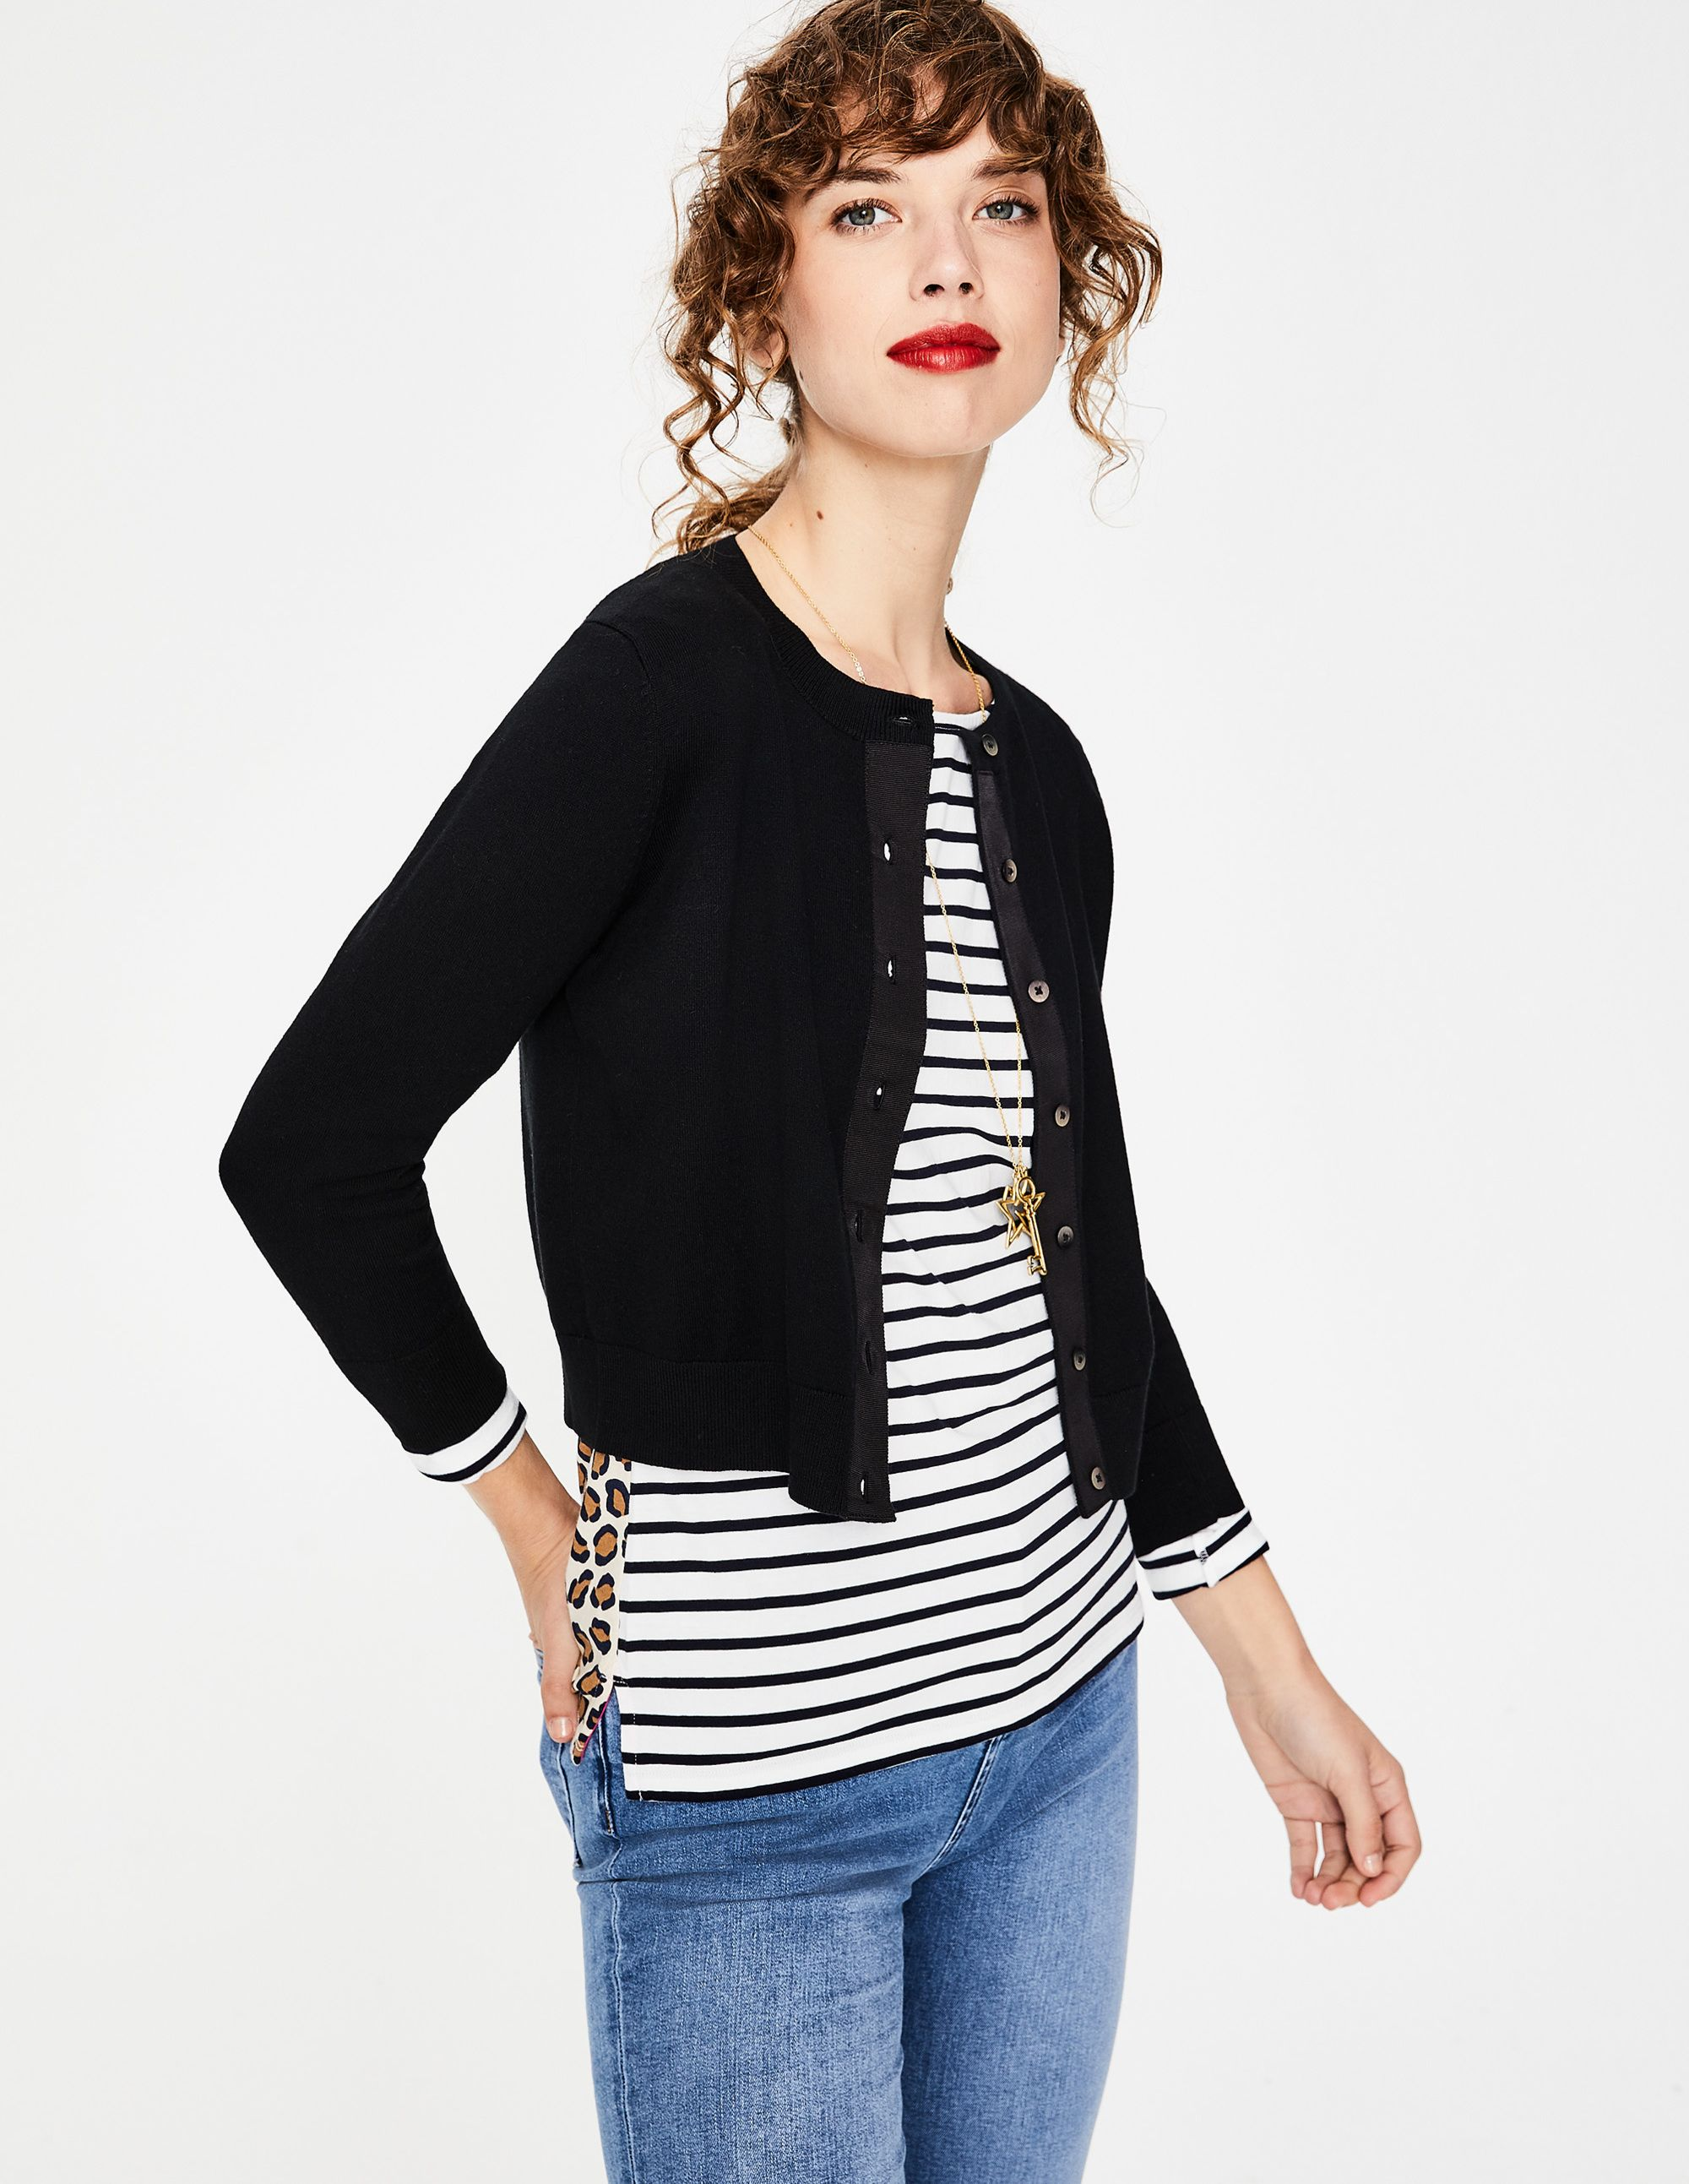 Amelia Crop Cardigan K0104 Knitted Cardigans at Boden (With